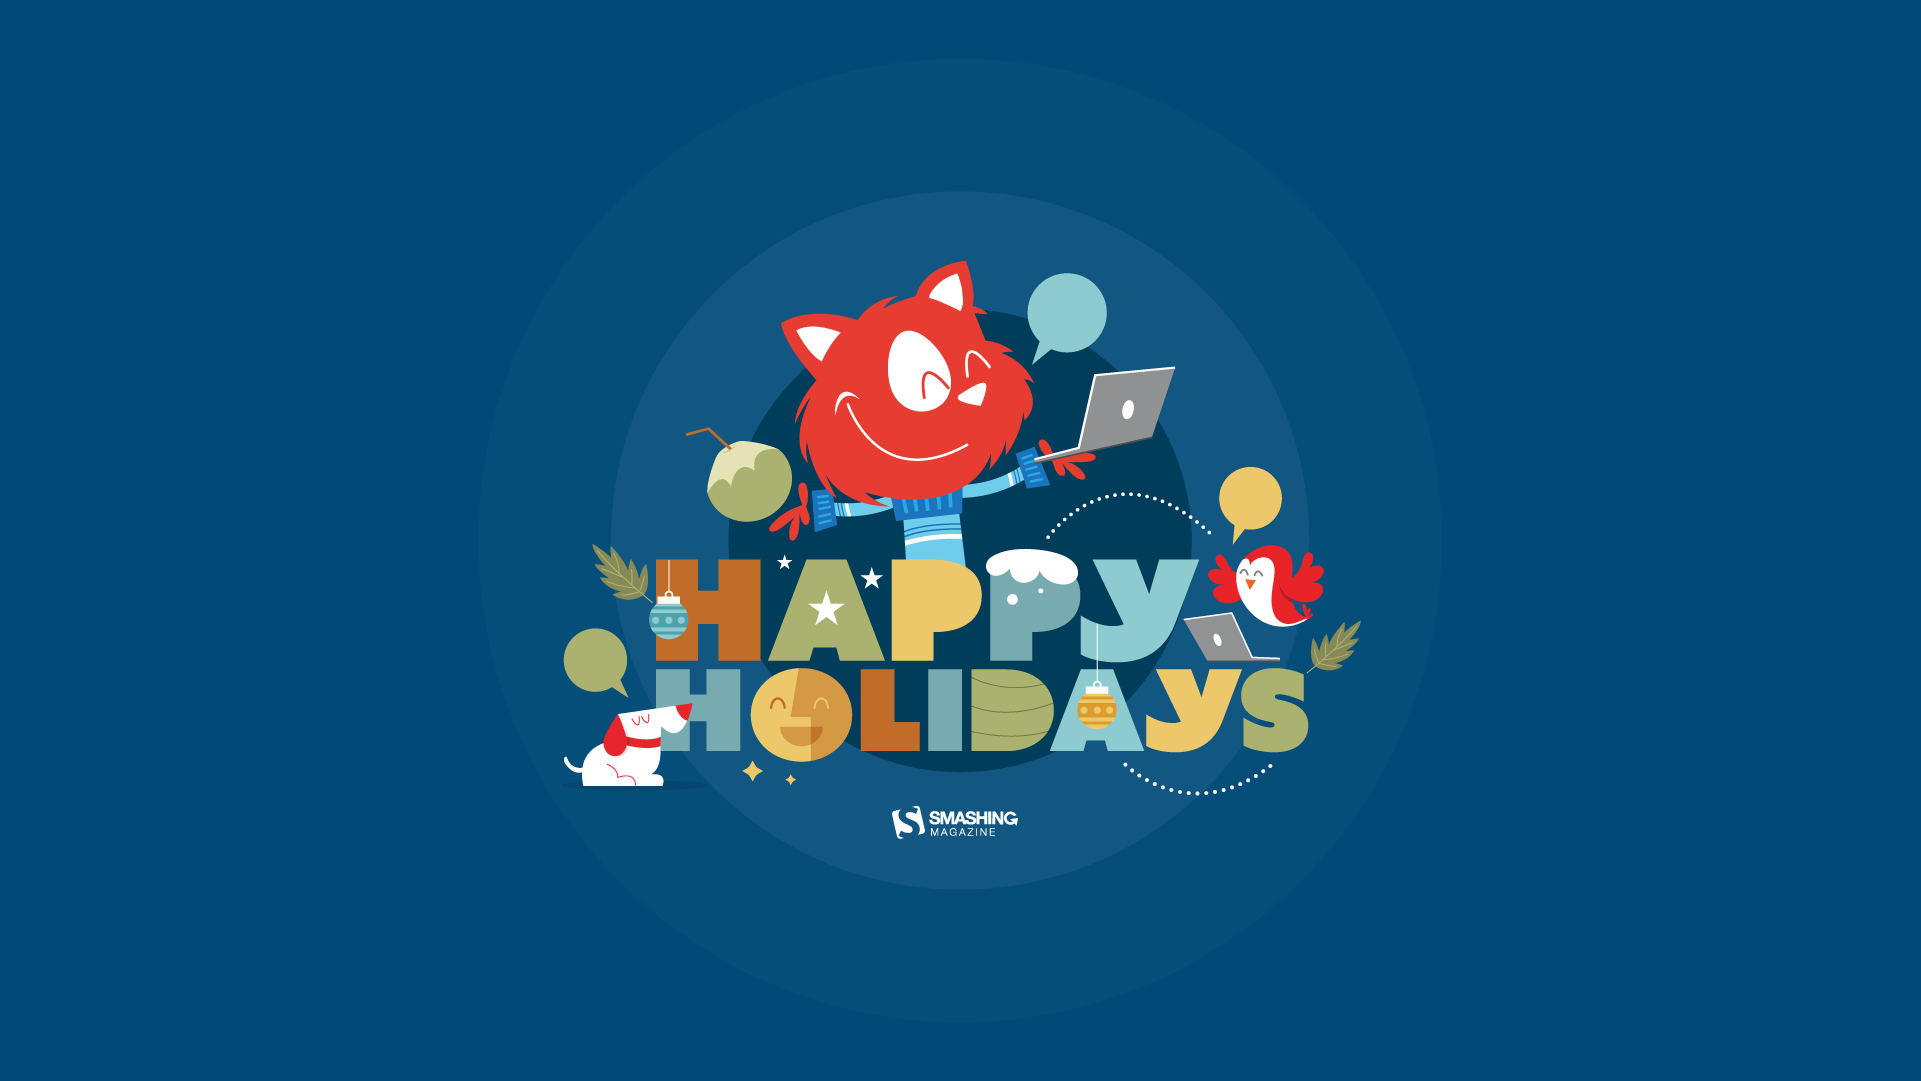 Happy Holidays HD Wallpaper for Desktop 1920x1080